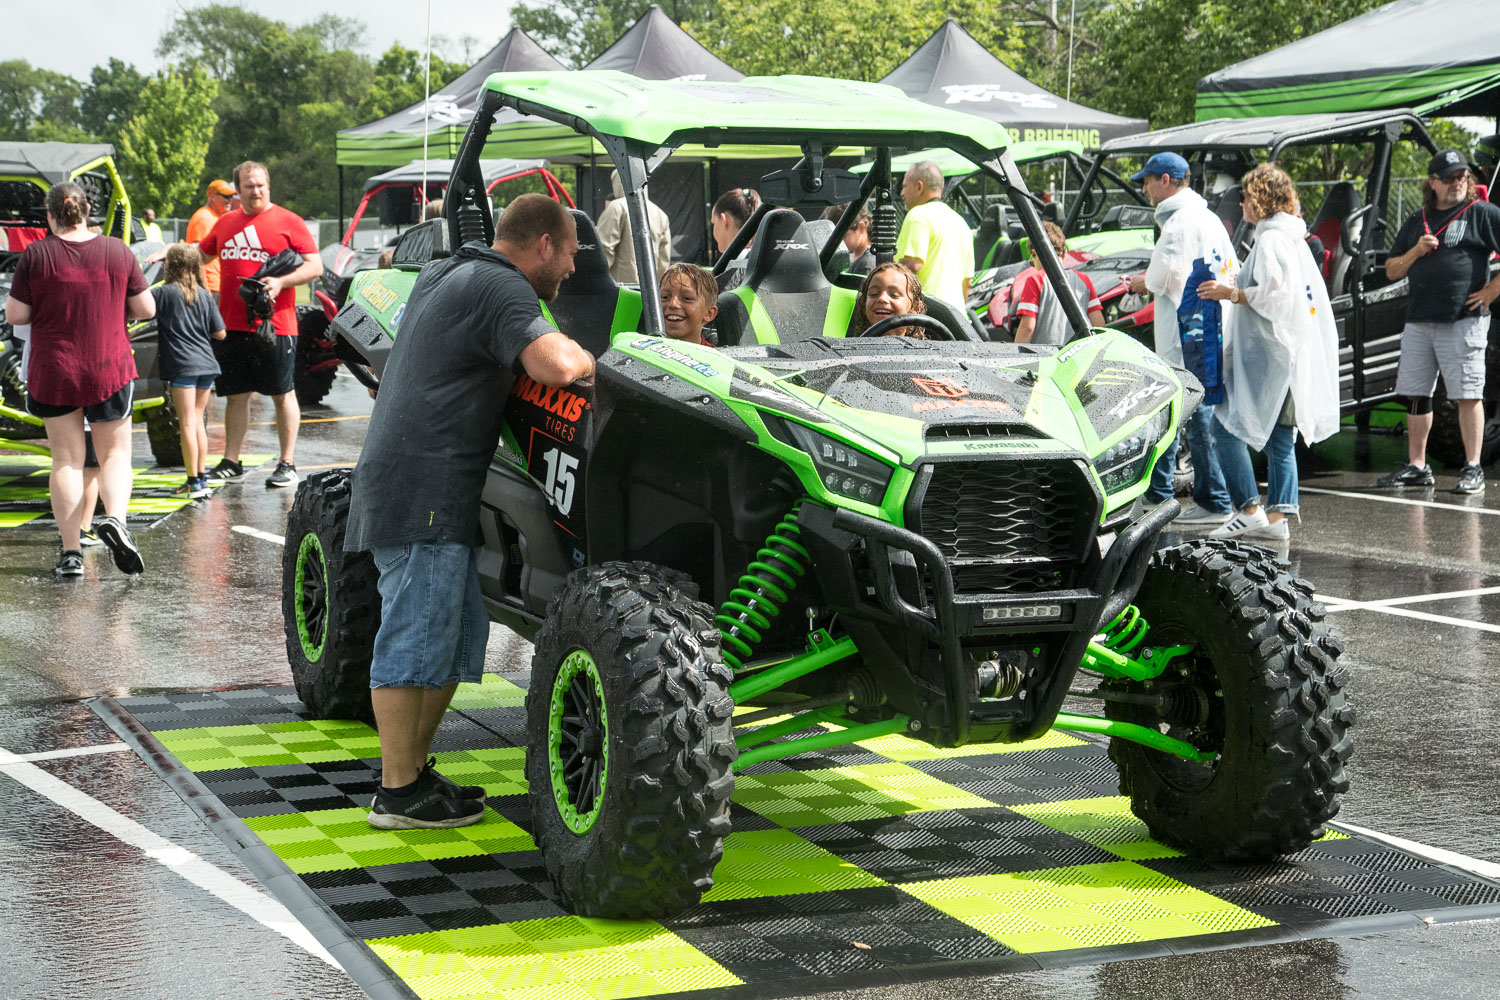 A family tries out a Kawasaki dune buggy during the Monster Jam Pit Party prior to the main event at GEHA Field at Arrowhead on Saturday evening, June 26, 2021.